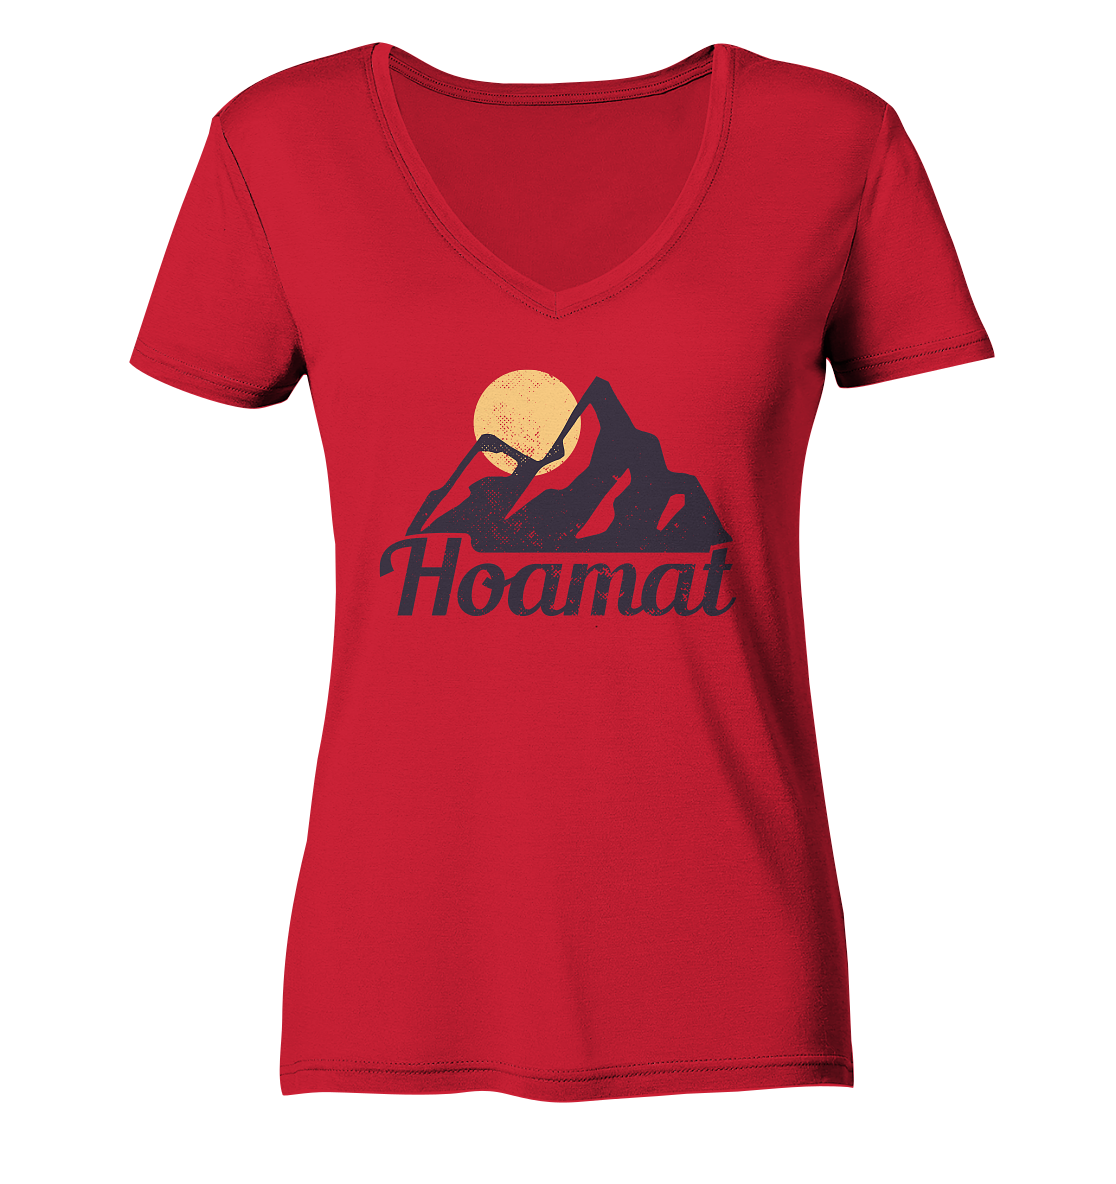 Hoamat - Ladies Organic V-Neck Shirt